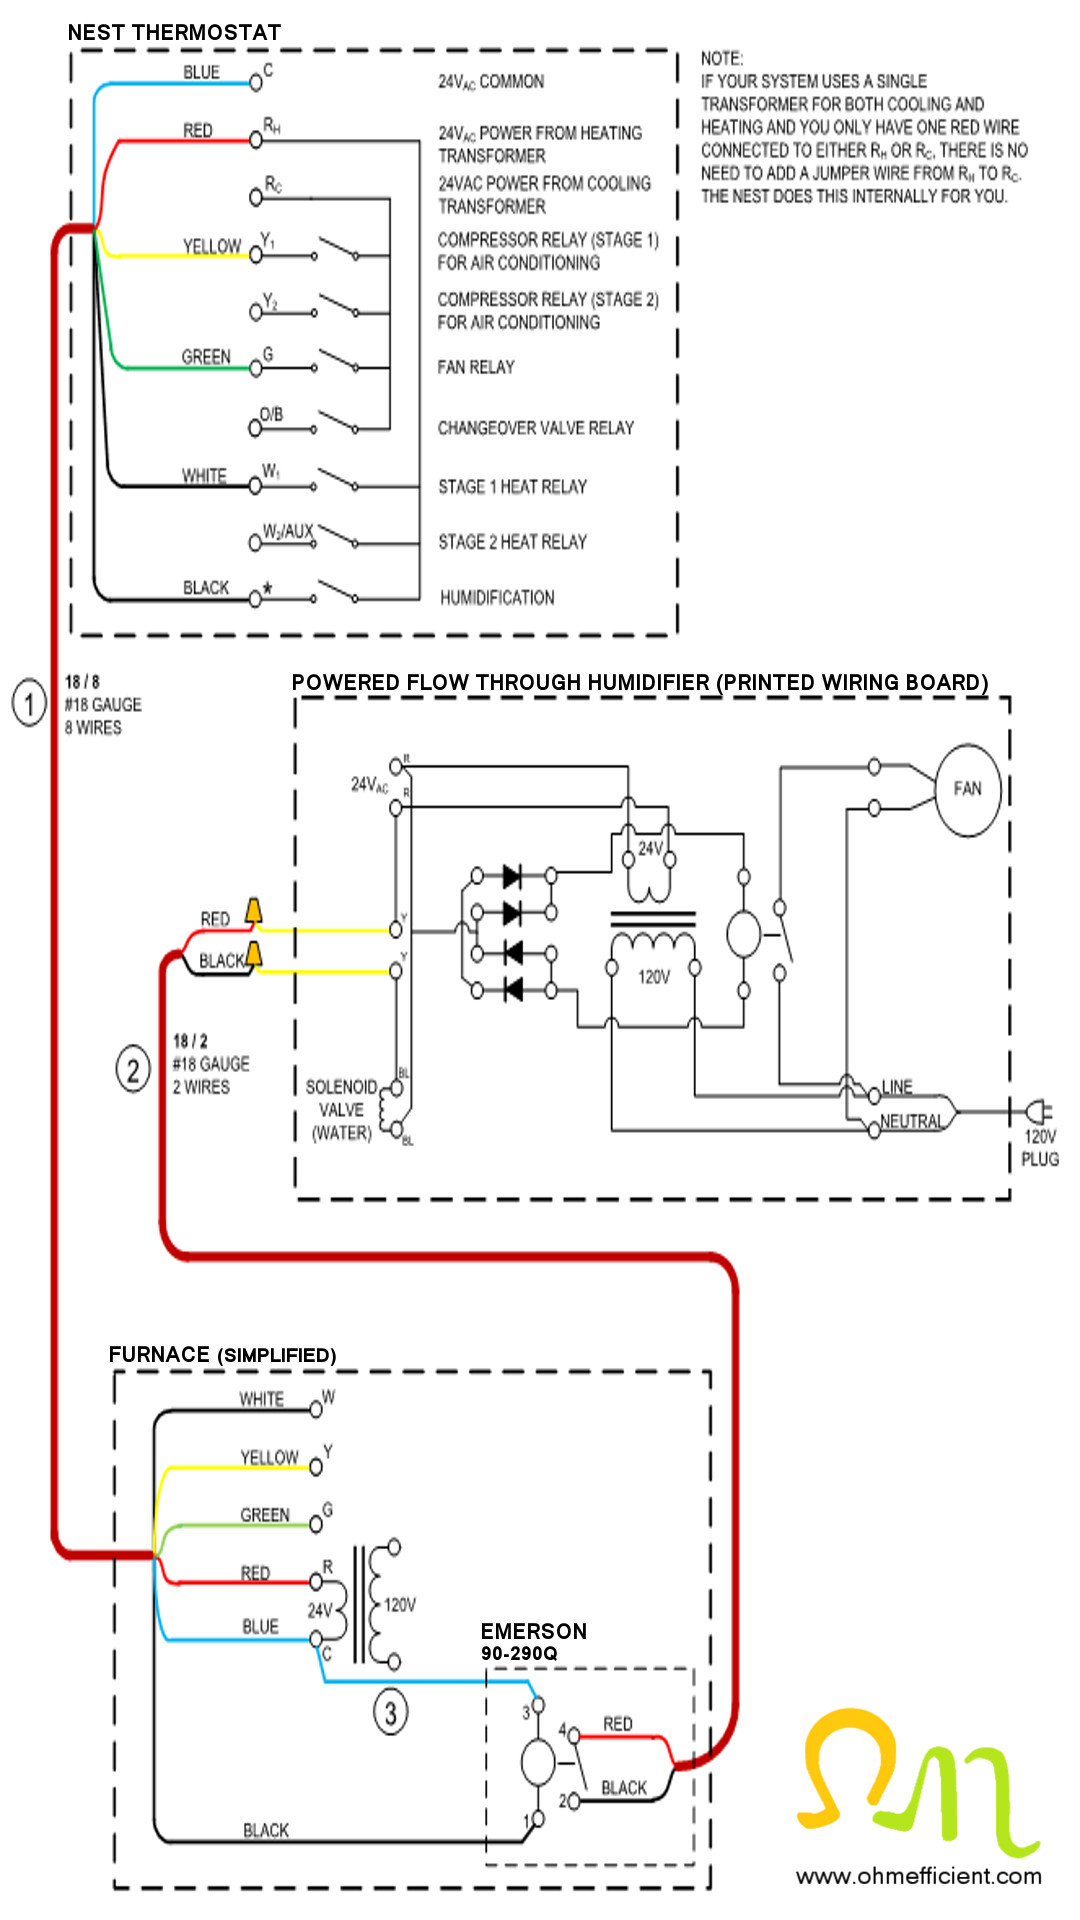 The Nest Thermostat Wiring Diagram | Wiring Diagram - Nest 1 Wiring Diagram